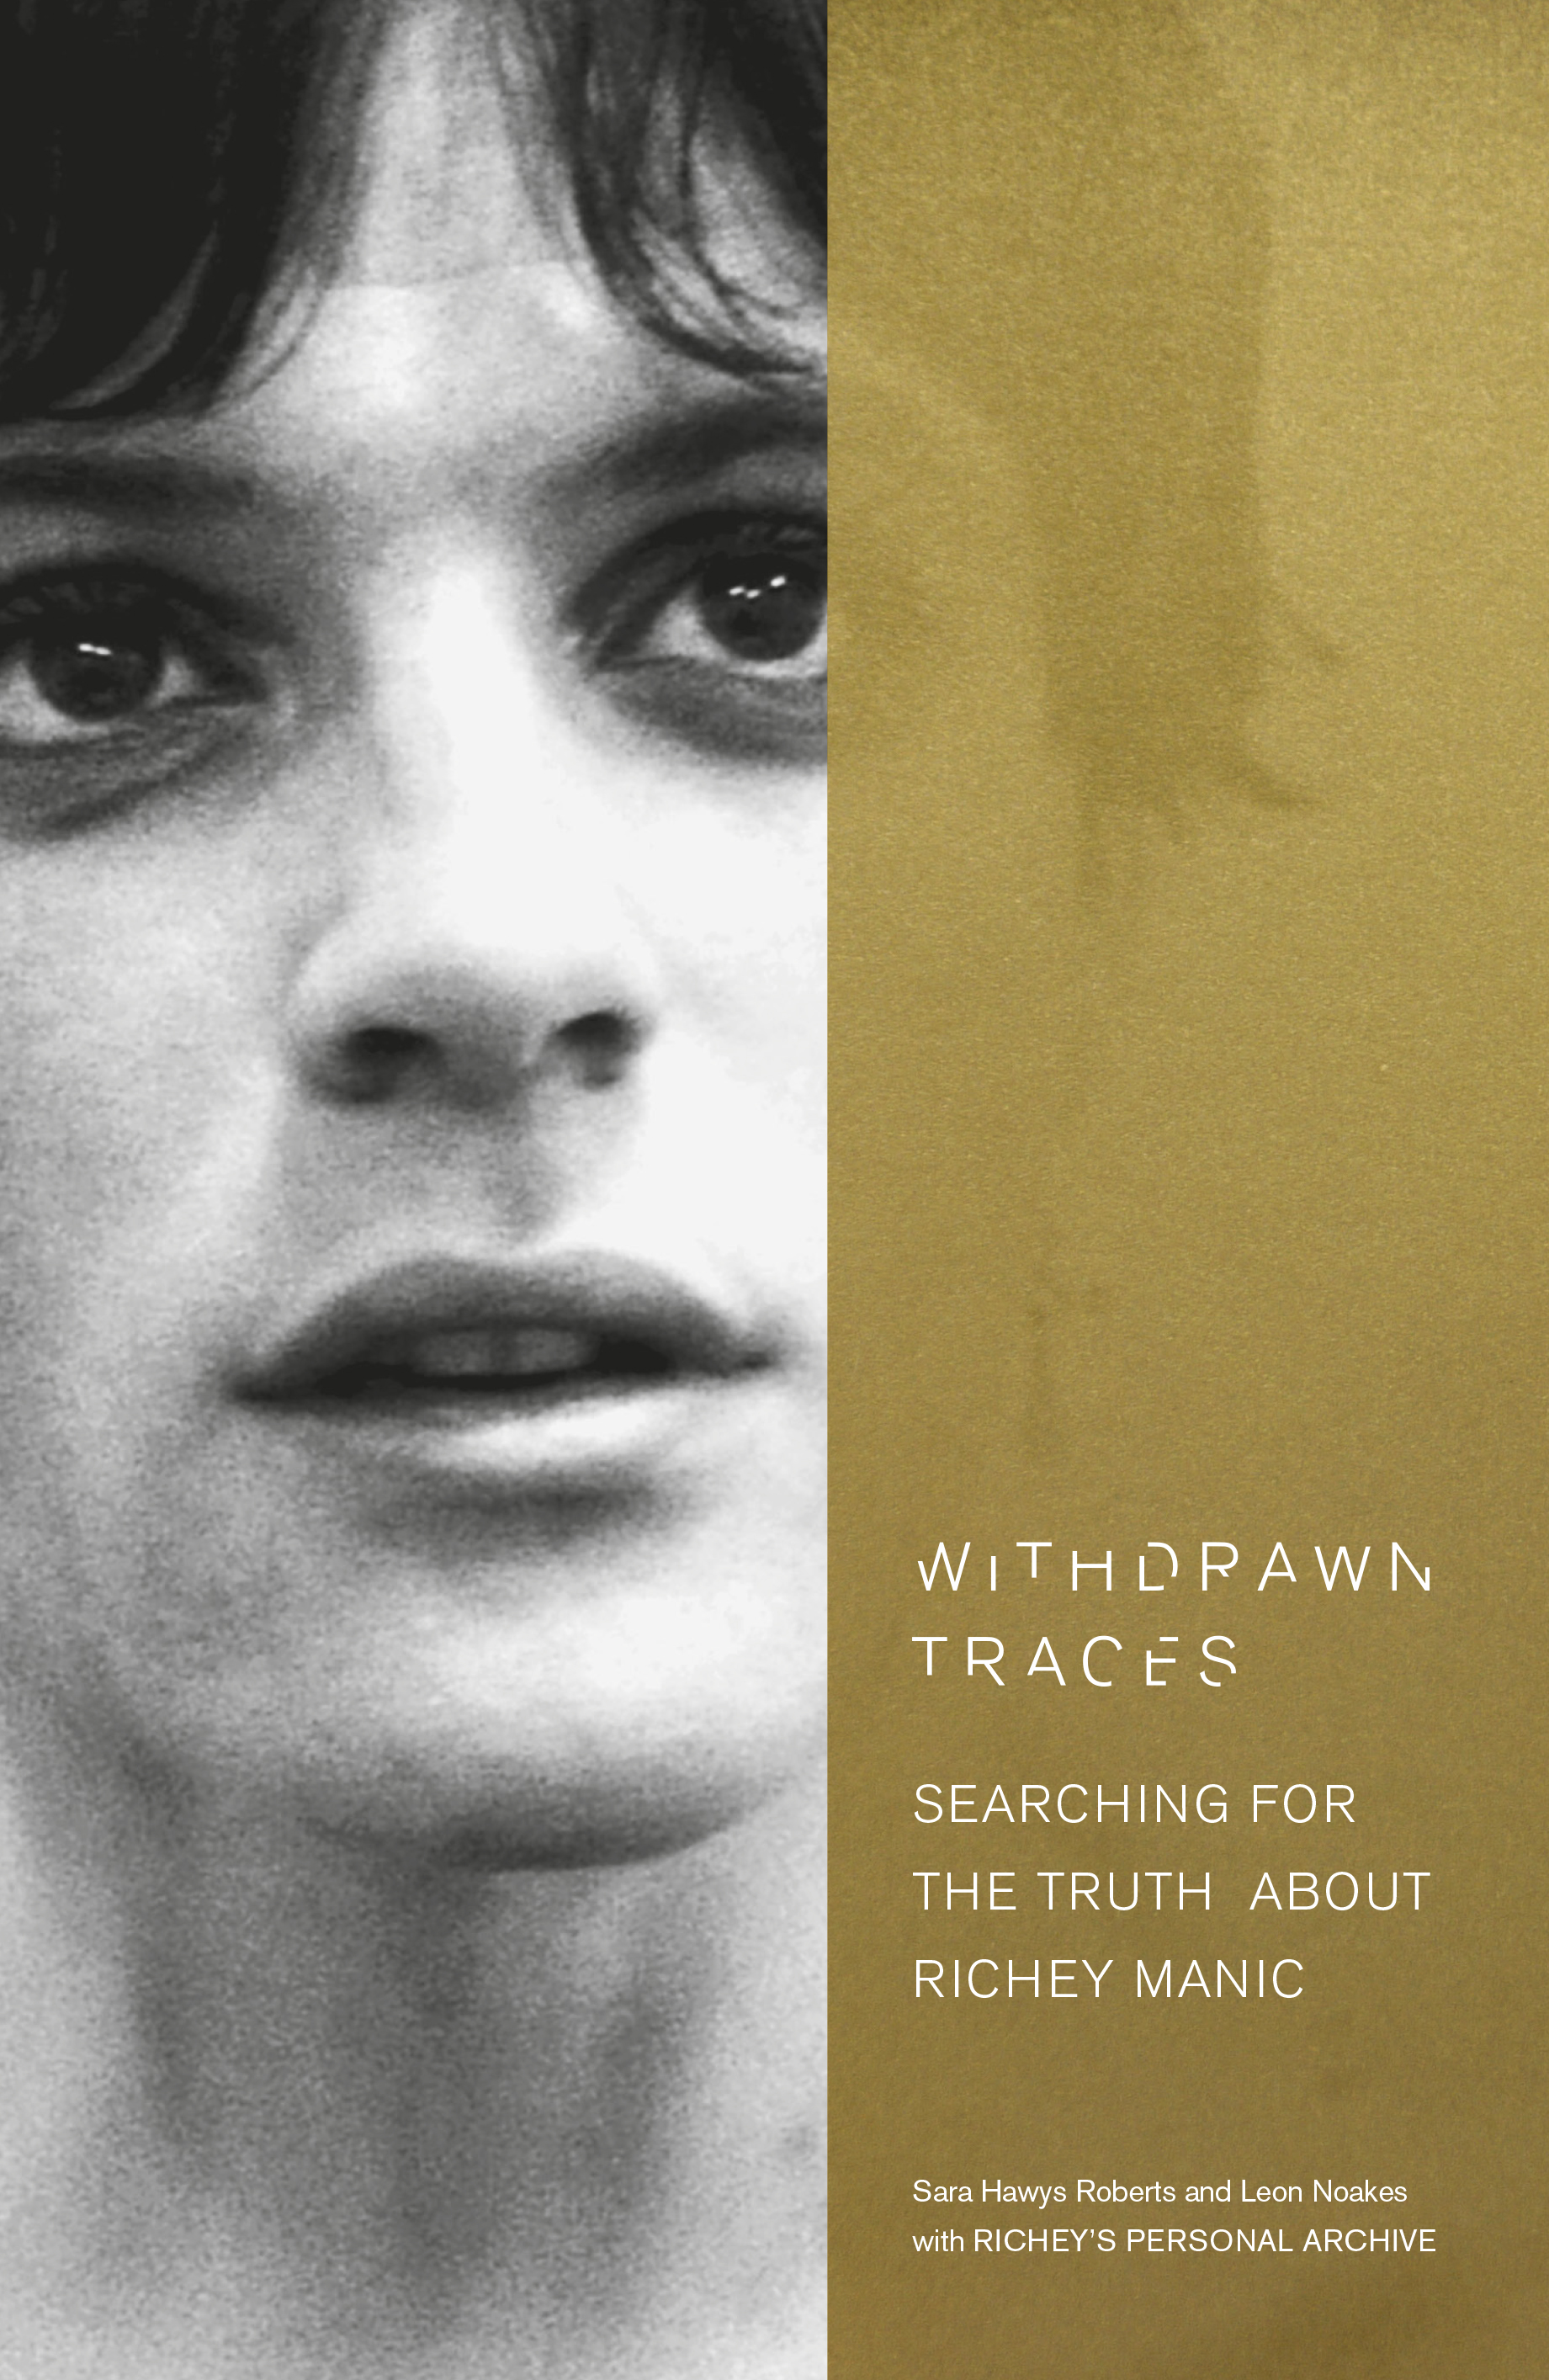 Withdrawn Traces: In Search of Richey Manic